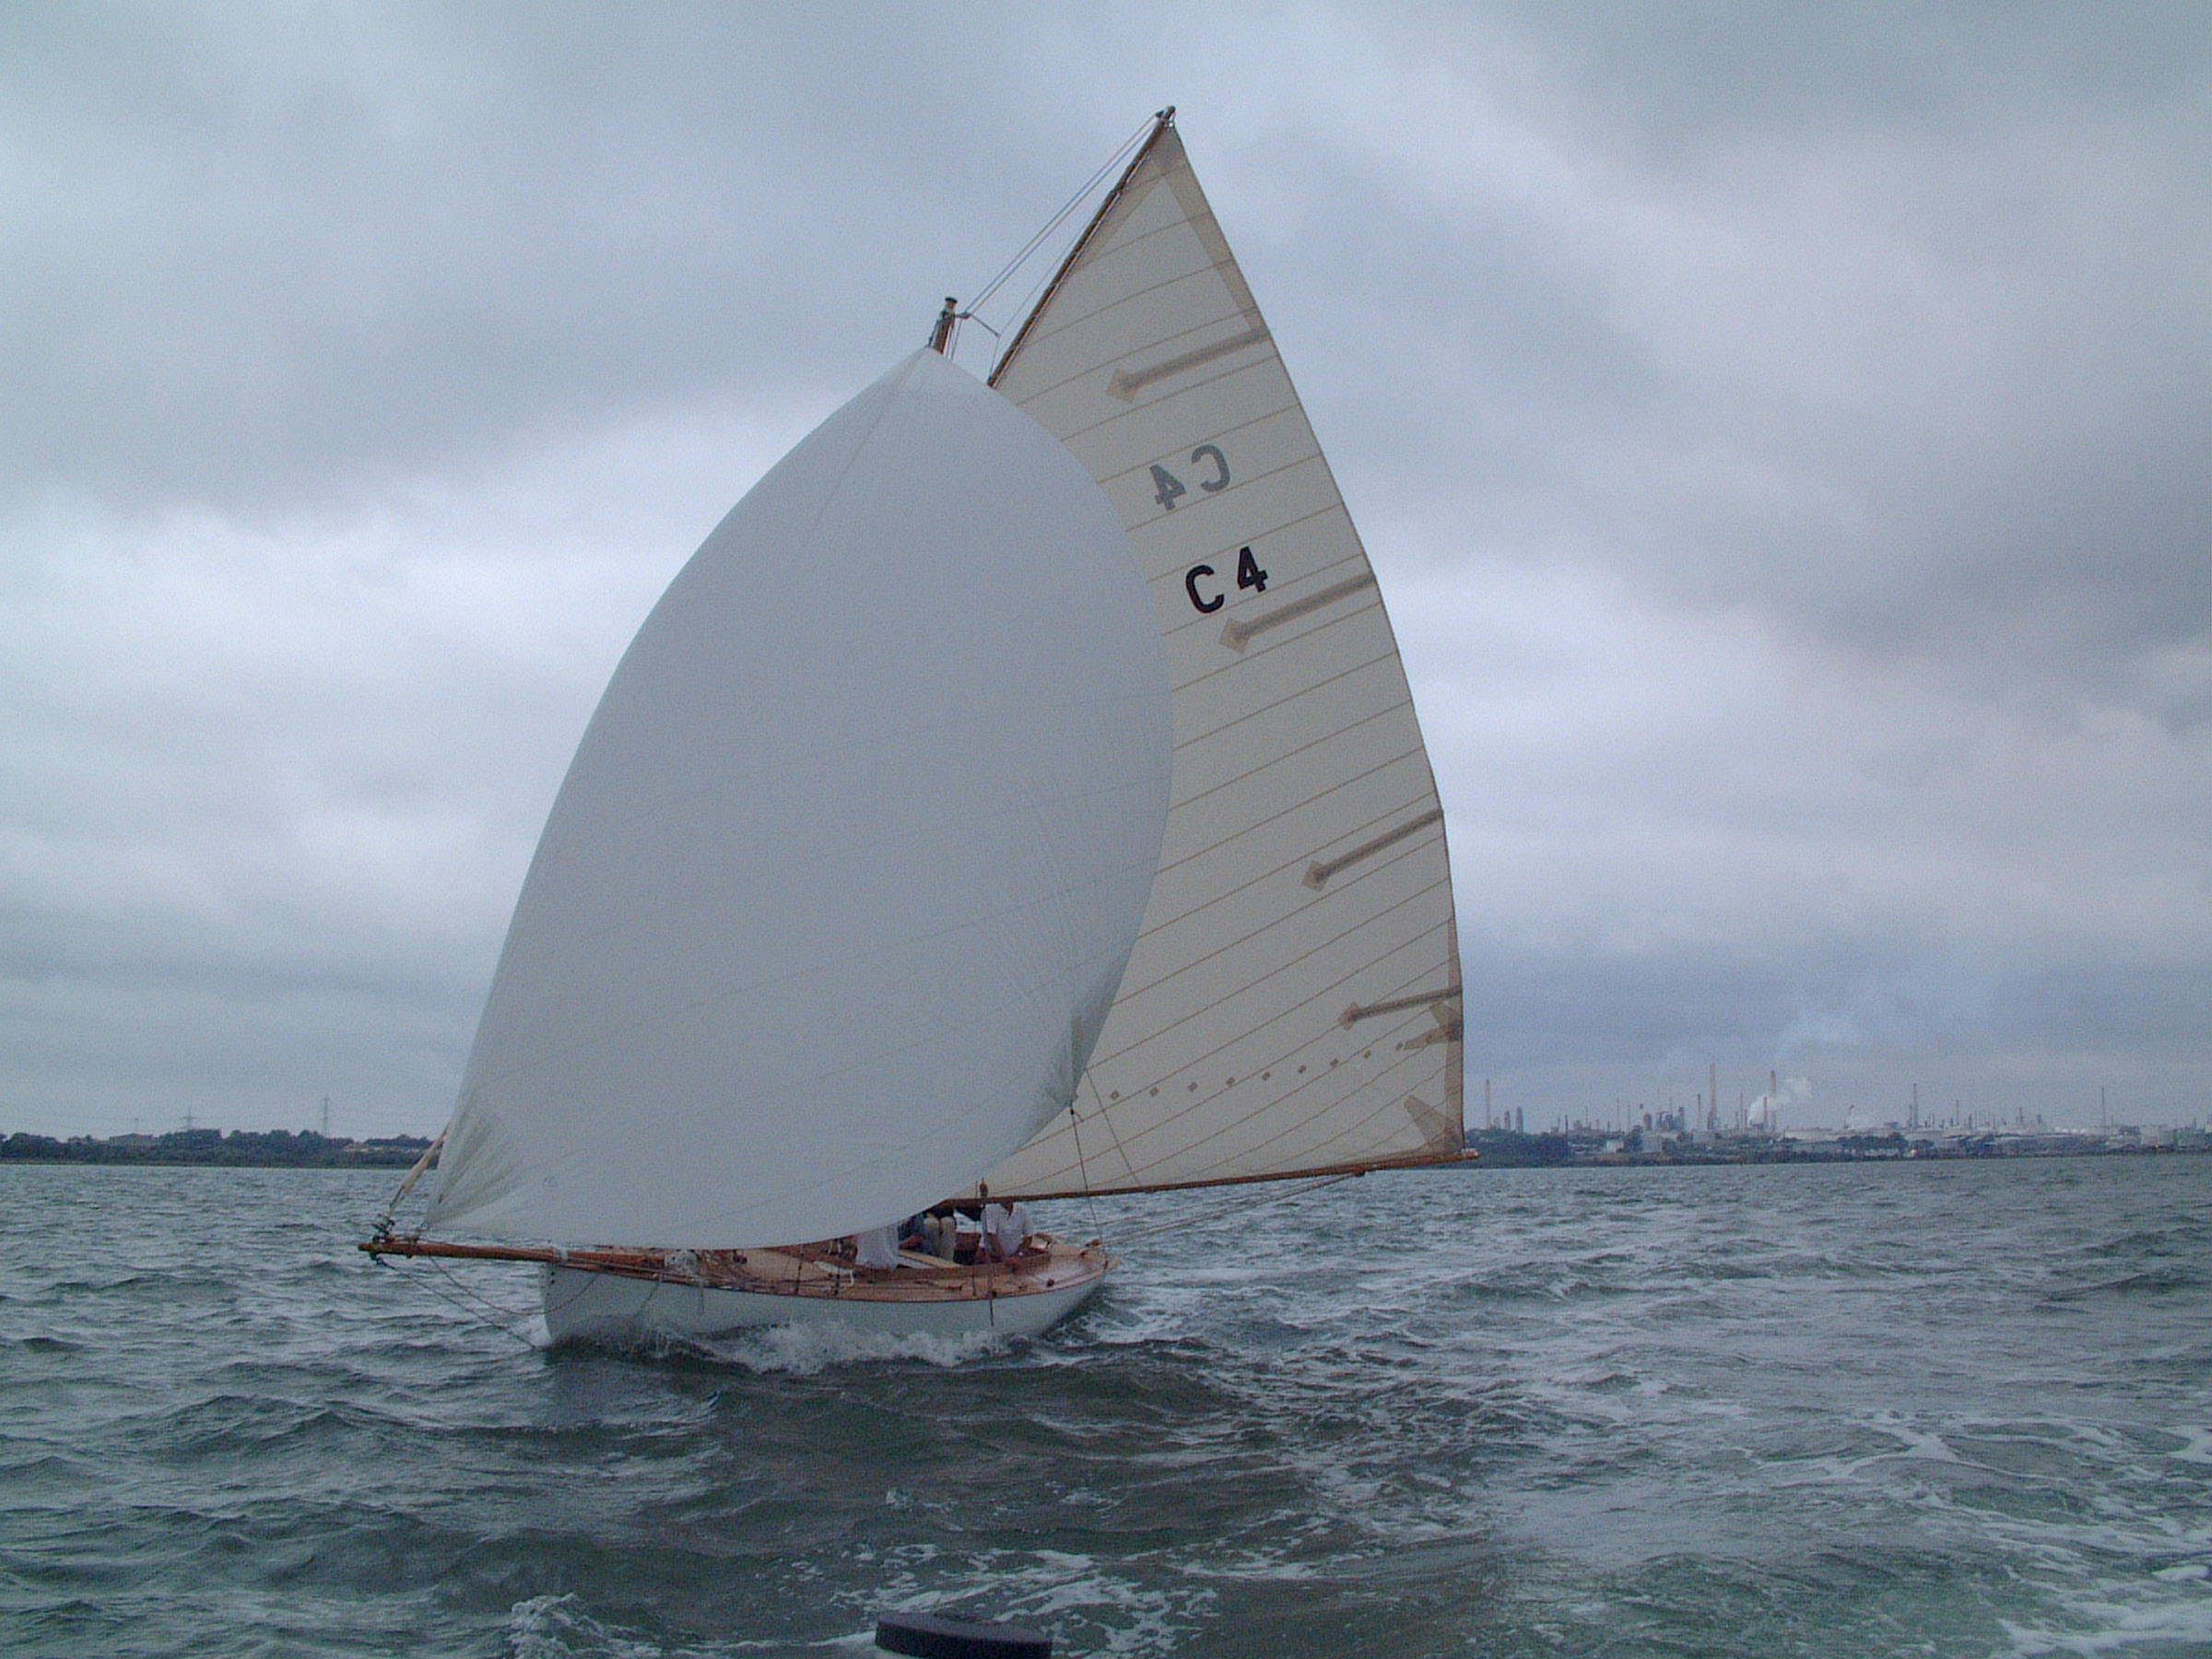 Jap trys out her new spinnaker